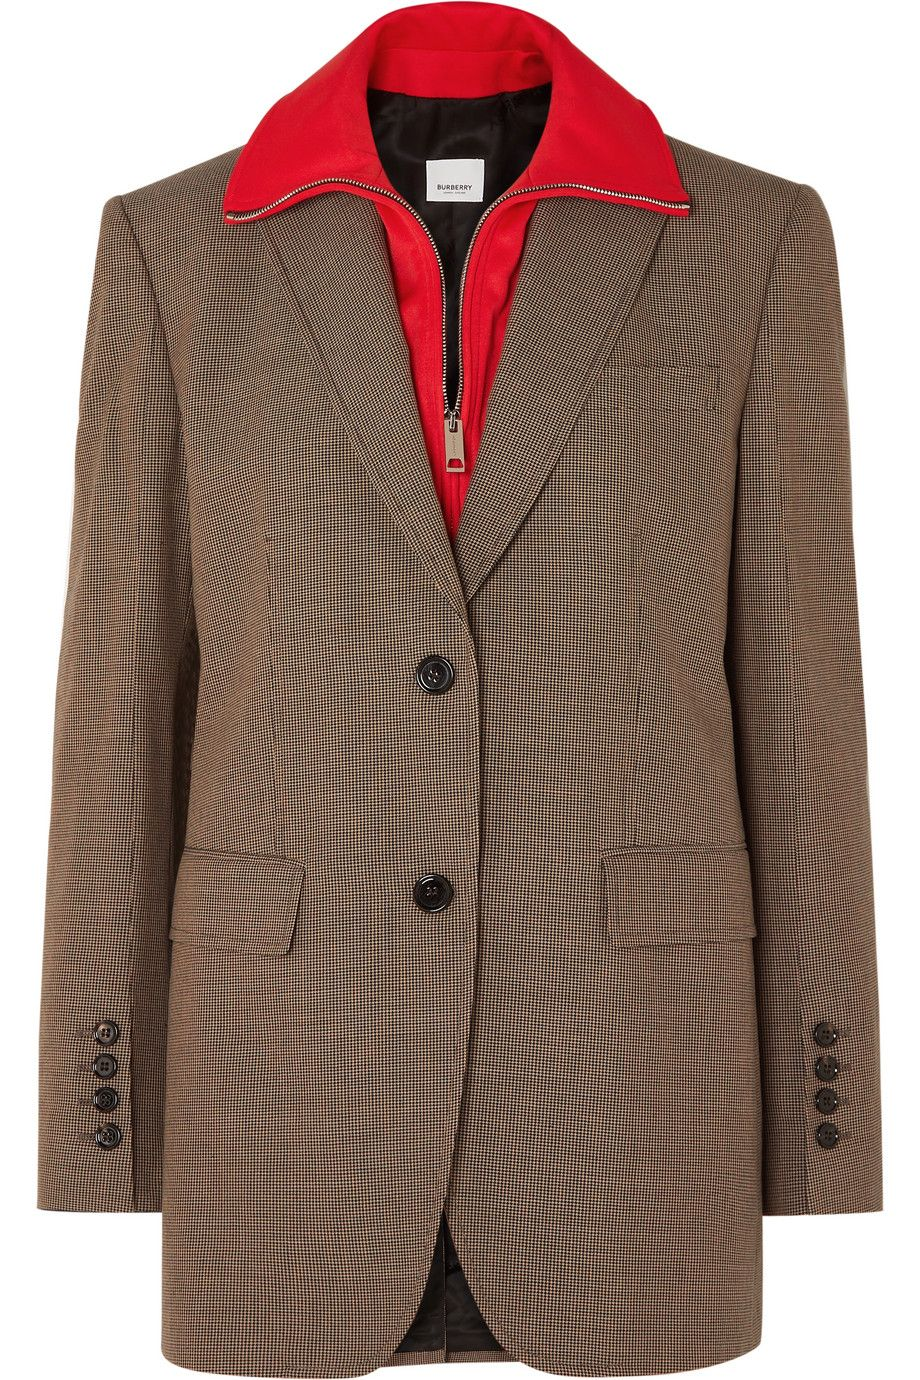 burberry-jersey-trimmed-houndstooth-wool-blazer